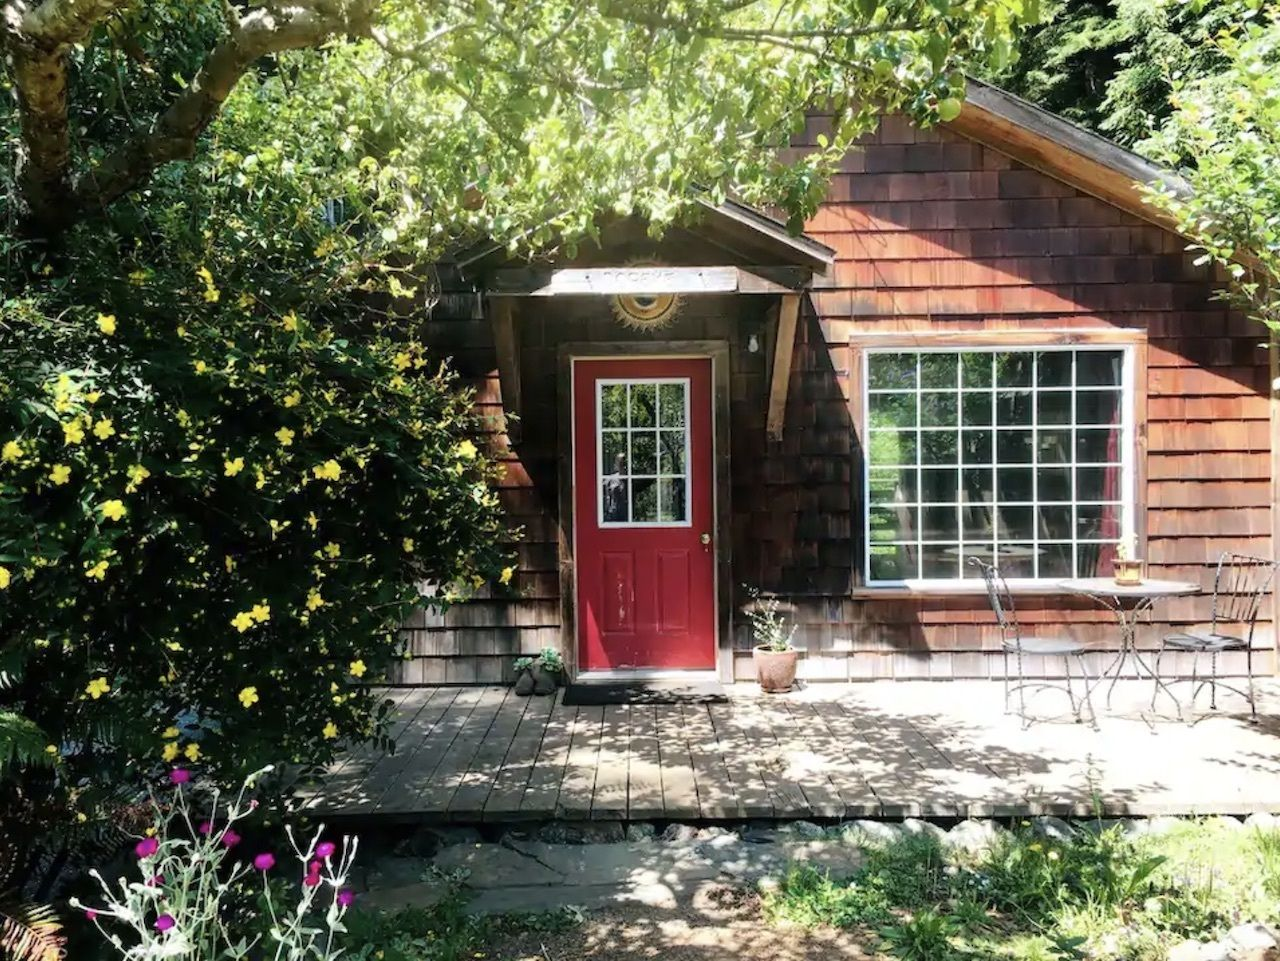 popeyes-cabin-airbnbs-near-redwoods-national-park, Airbnbs near redwoods national park